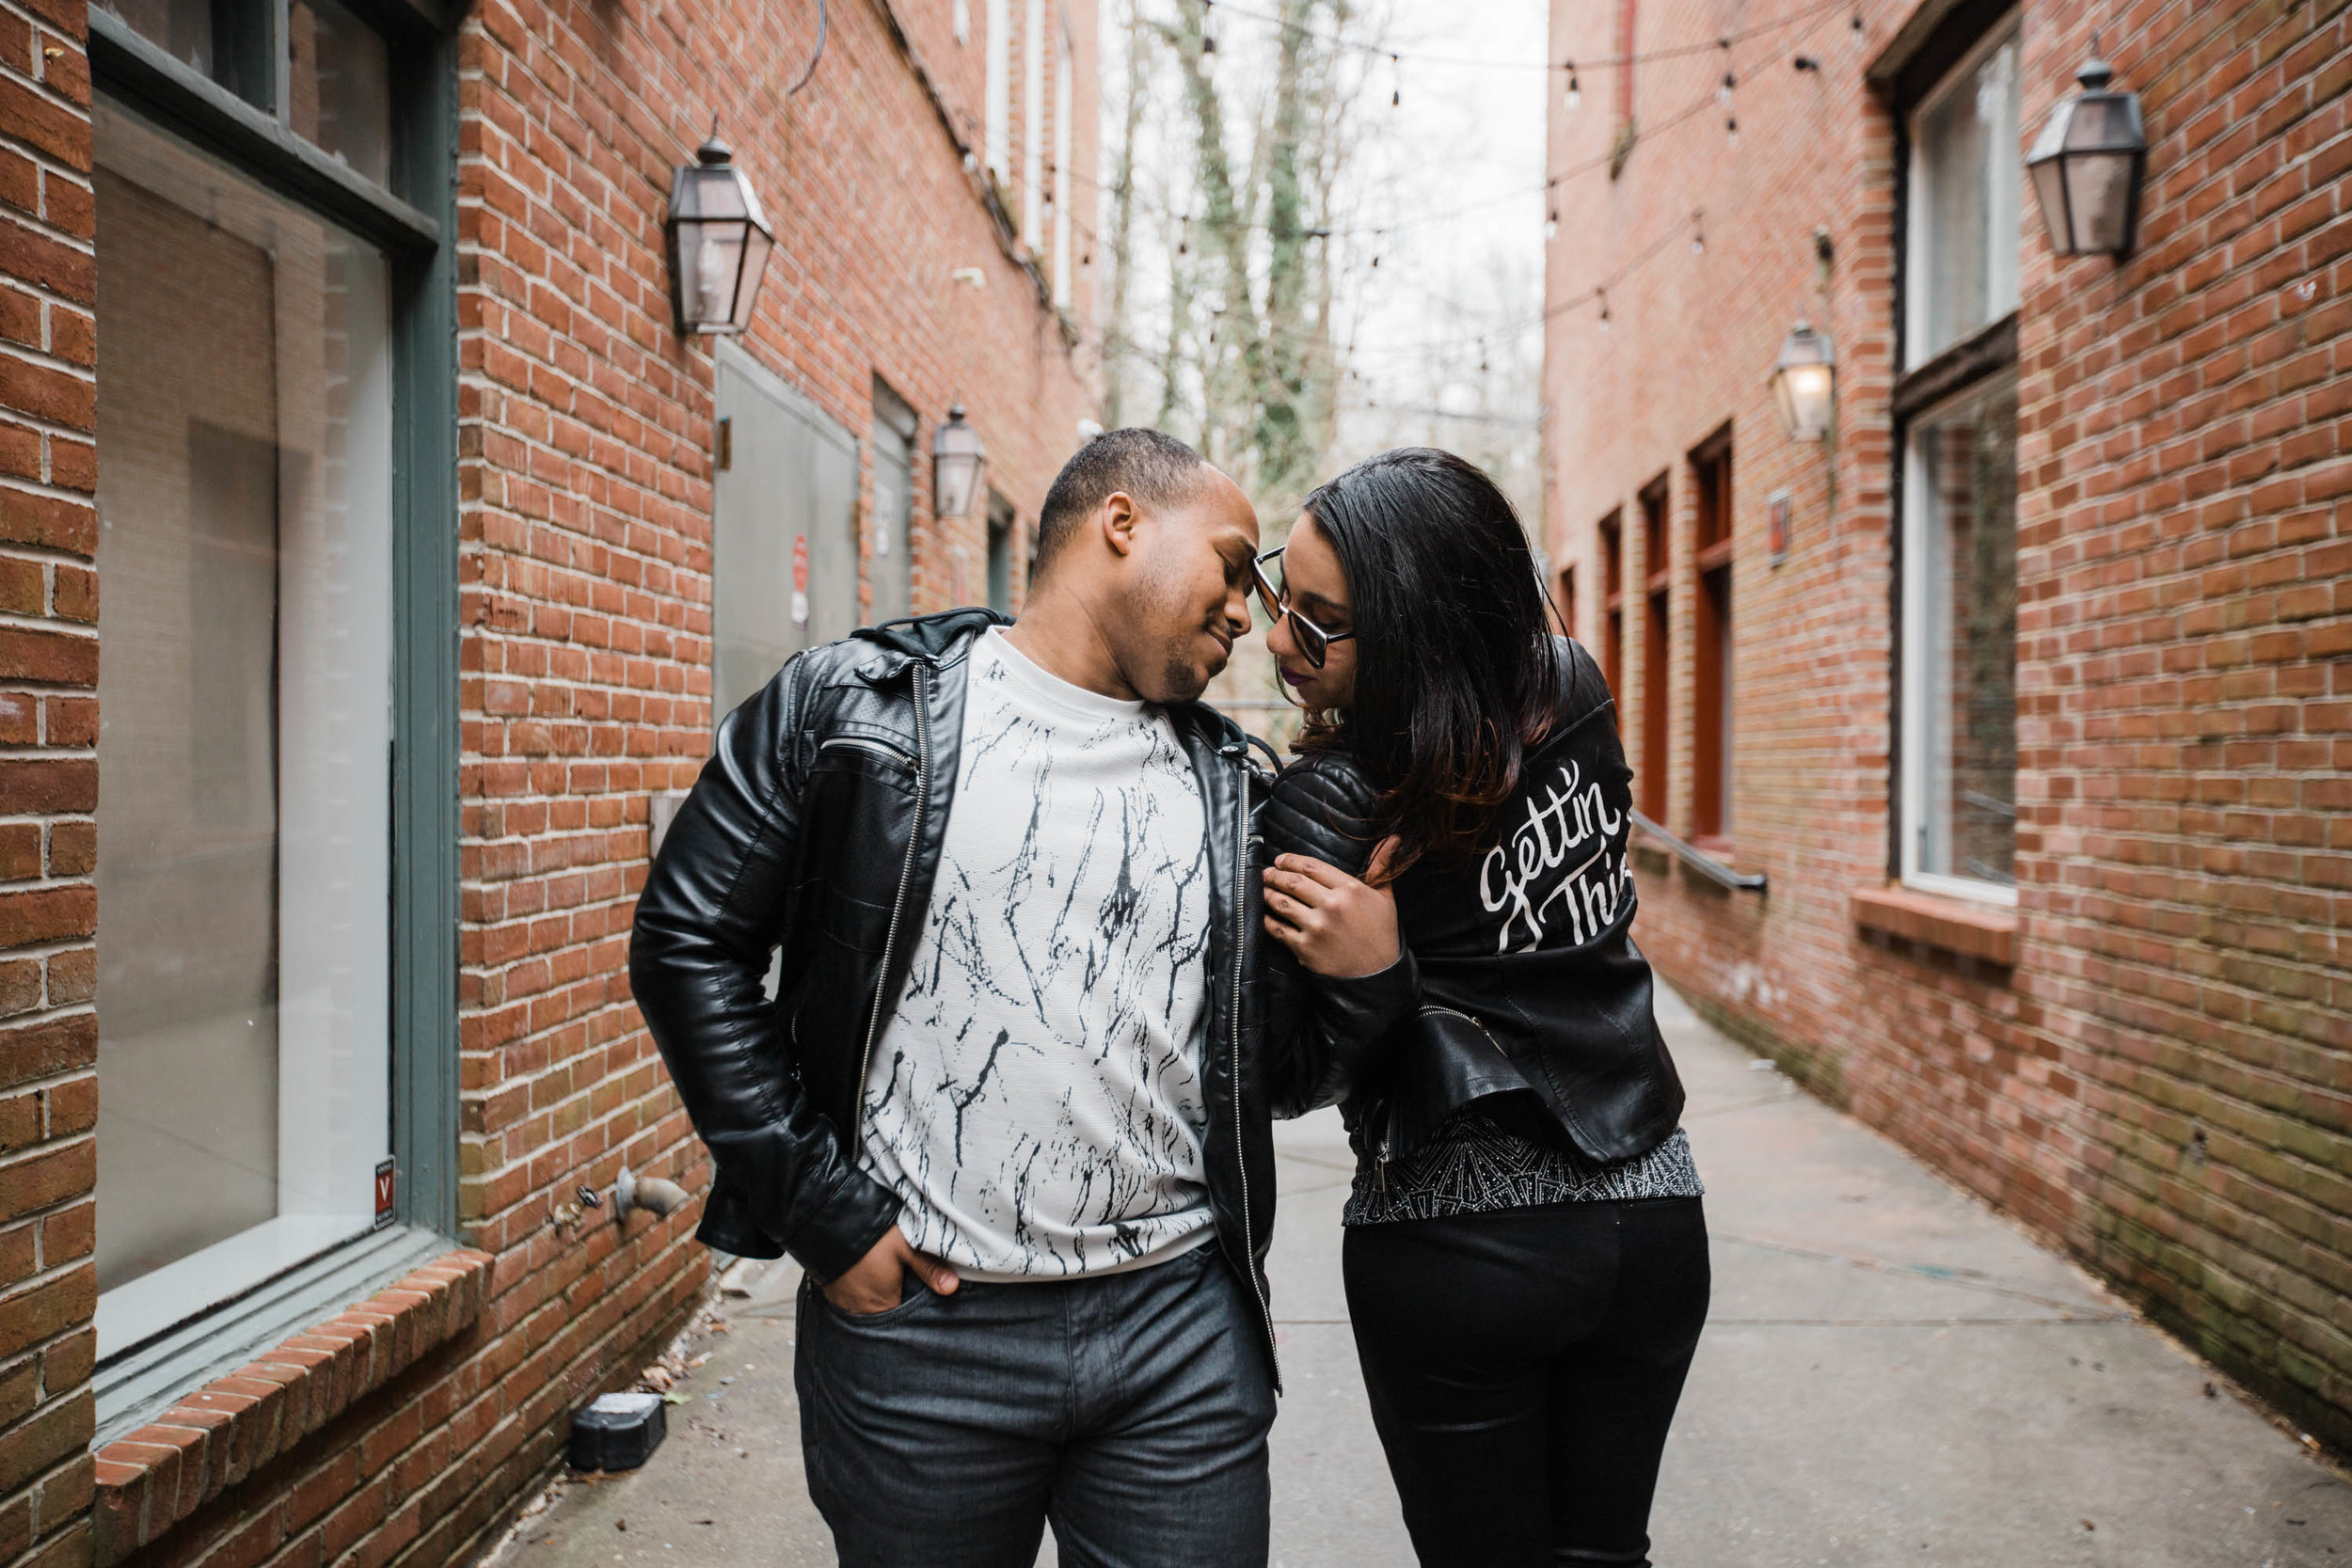 Hand lettered Black Leather jacket Pregnancy Announcement Baltimore Maternity Photographer Megapixels Media Photography-2.jpg